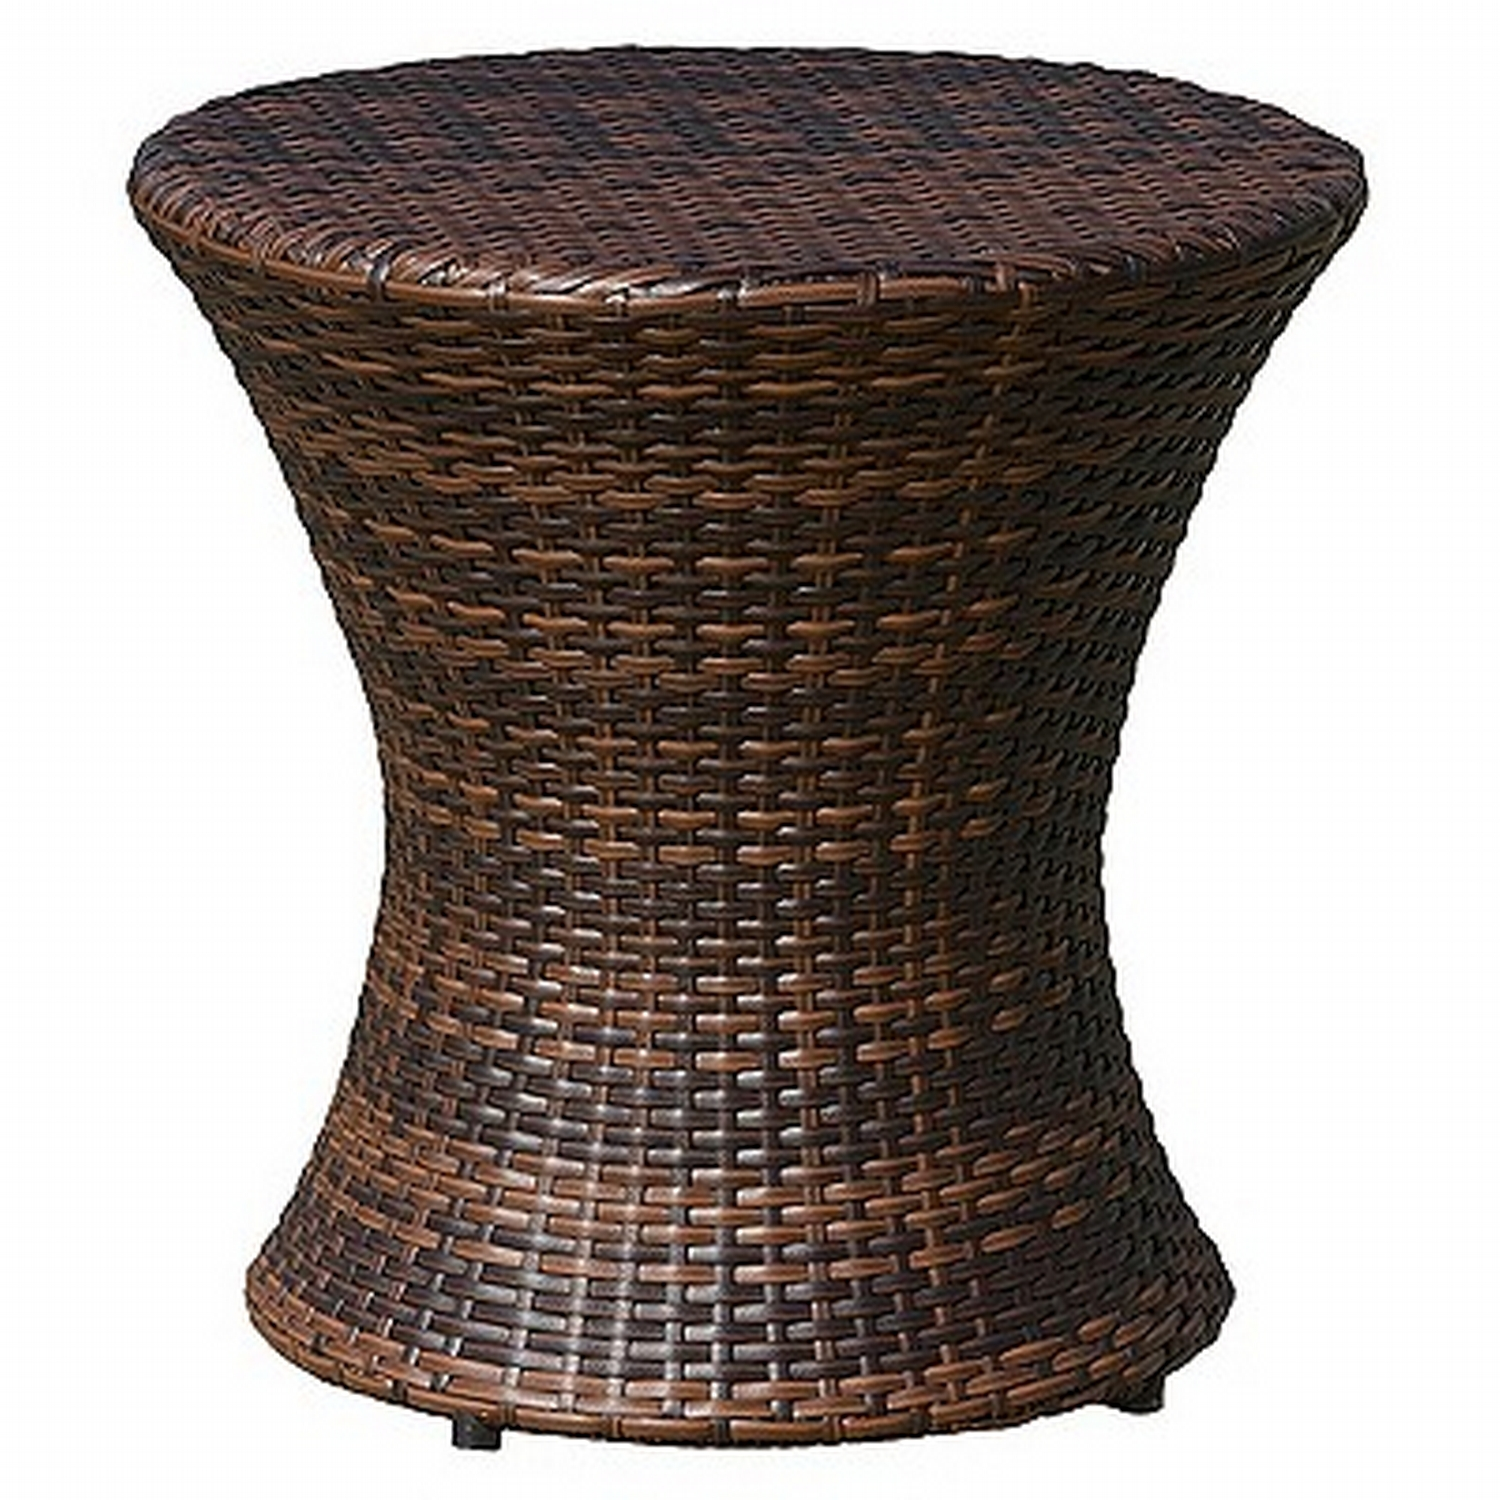 adriana wicker patio accent table multi brown christopher knight get home tiffany butterfly lamp original living room cabinets tablecloth for inch round the bay outdoor furniture